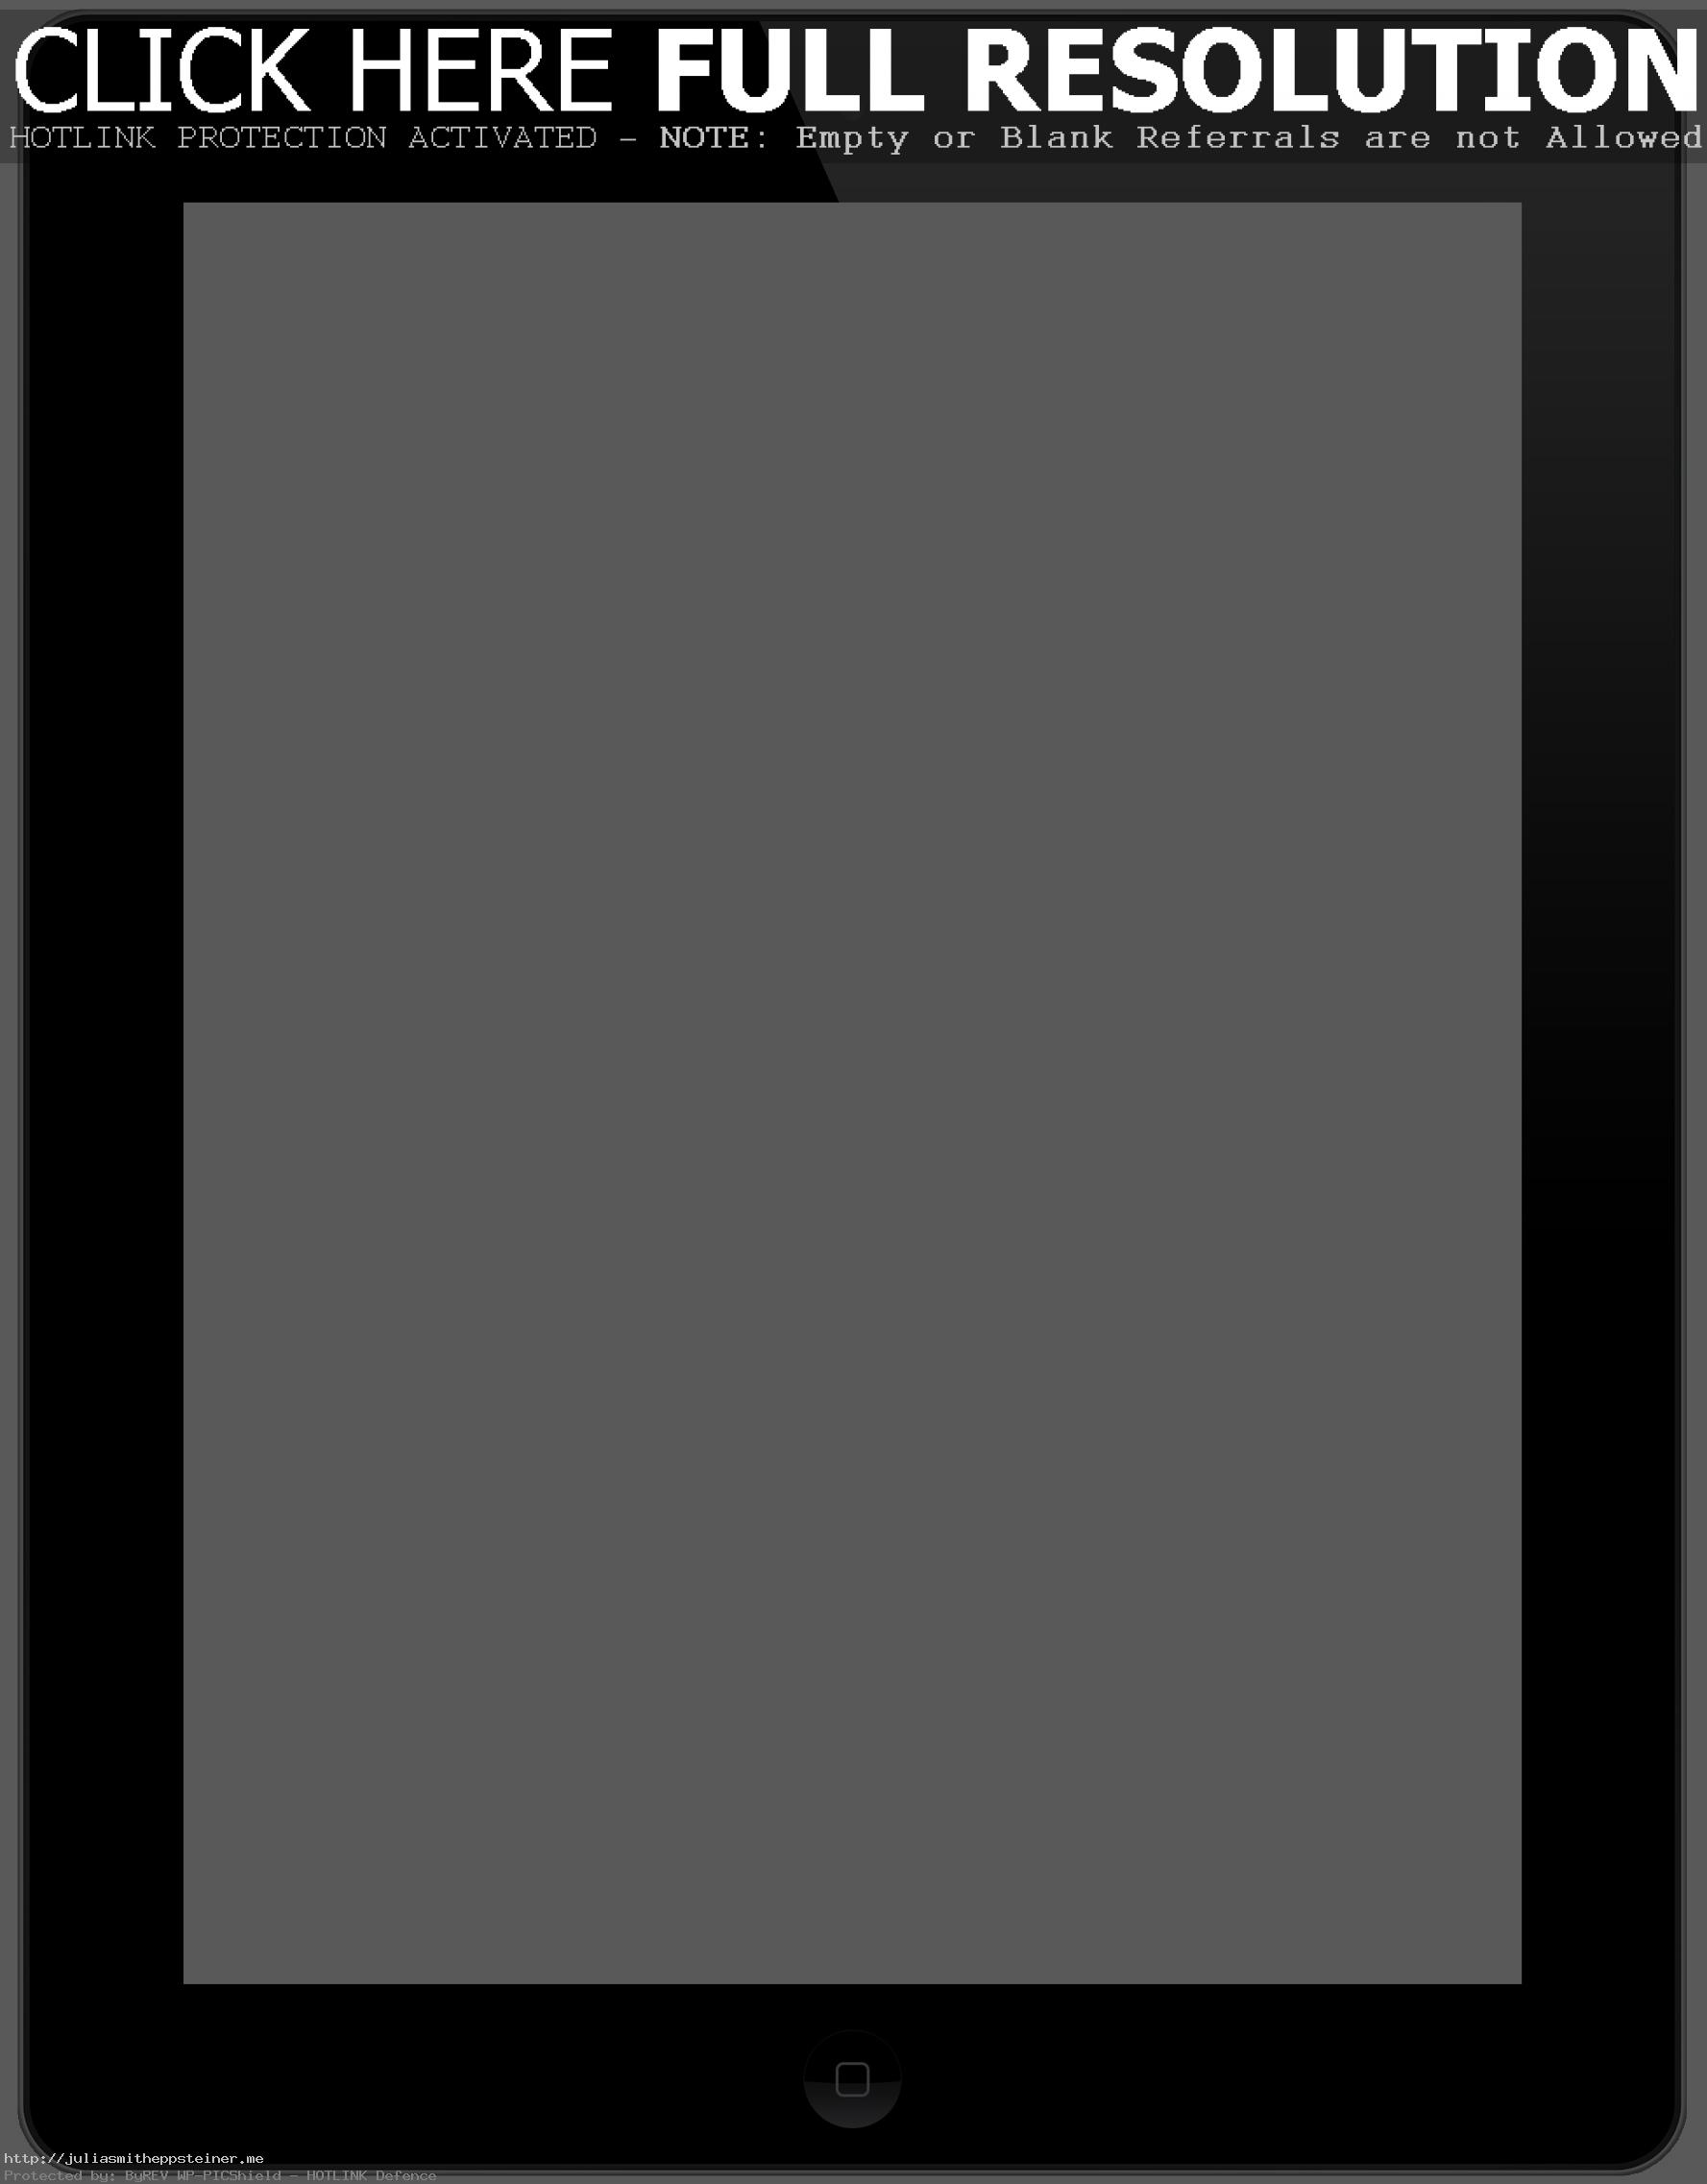 Tablet PNG Images Transparent Free Downl-Tablet PNG Images Transparent Free Download PNGMart Com Within Clipart ClipartLook.com -15